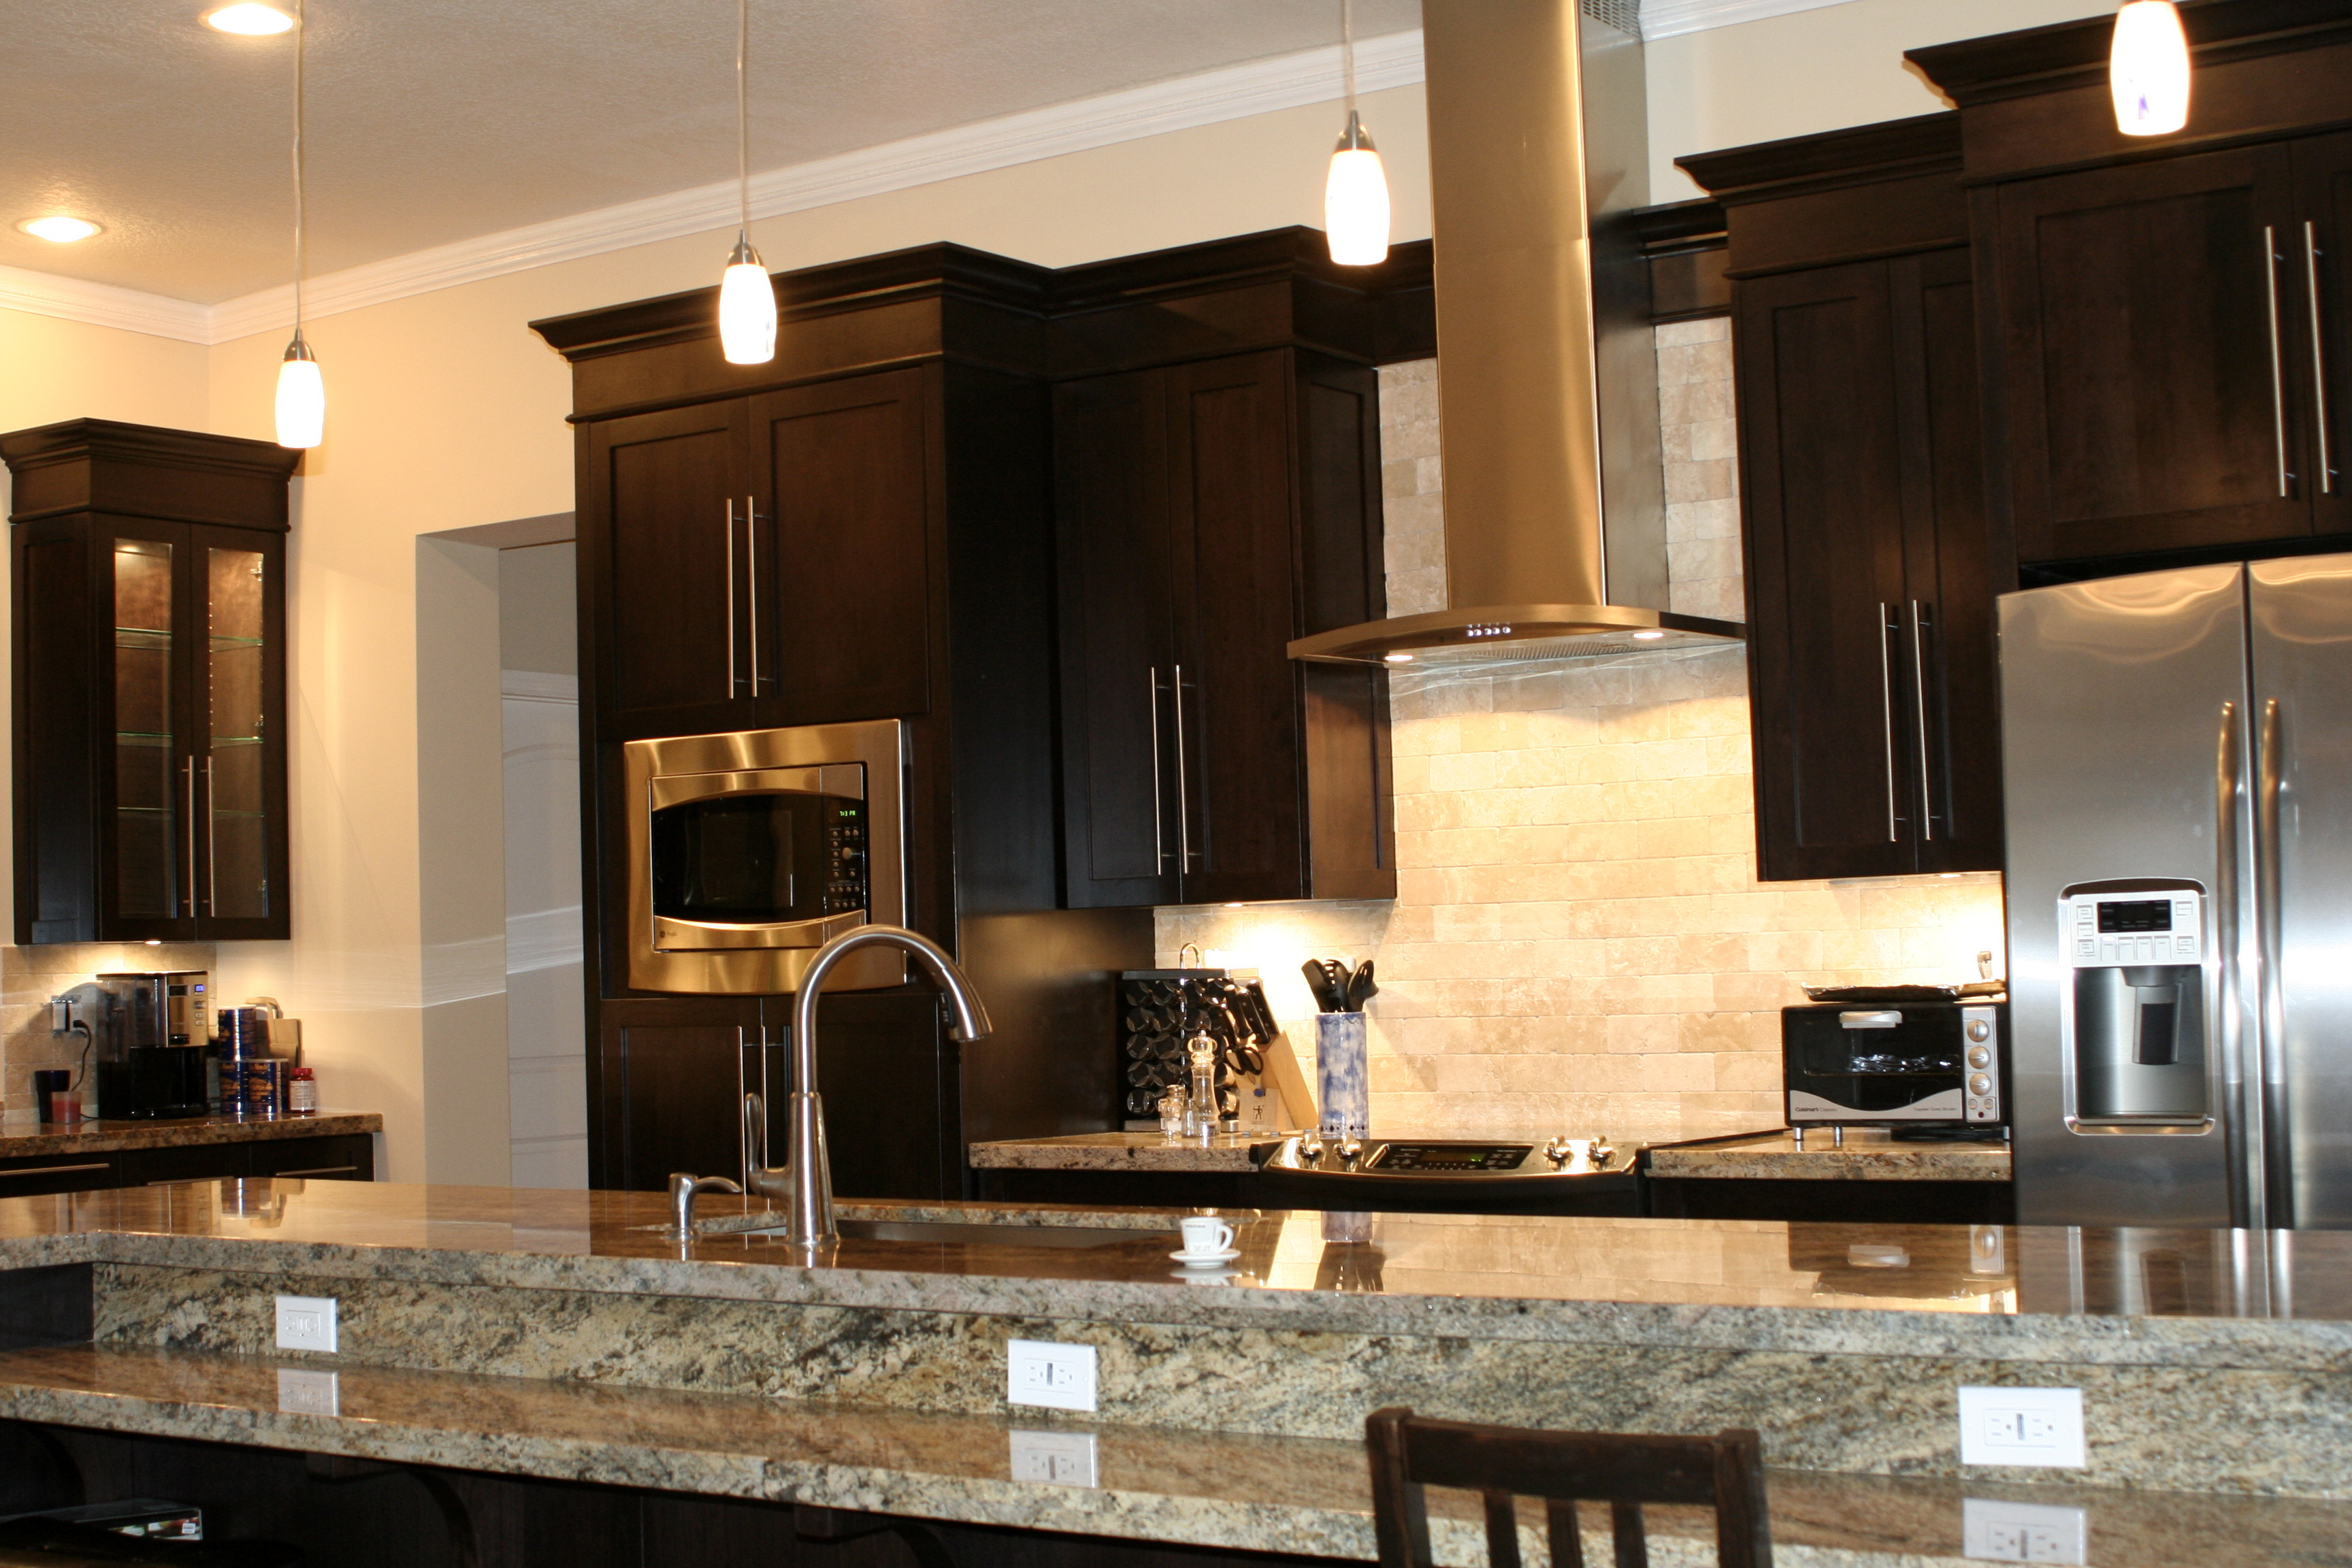 awesome Kitchen Remodeling In Miami #4: Kitchen Remodeling